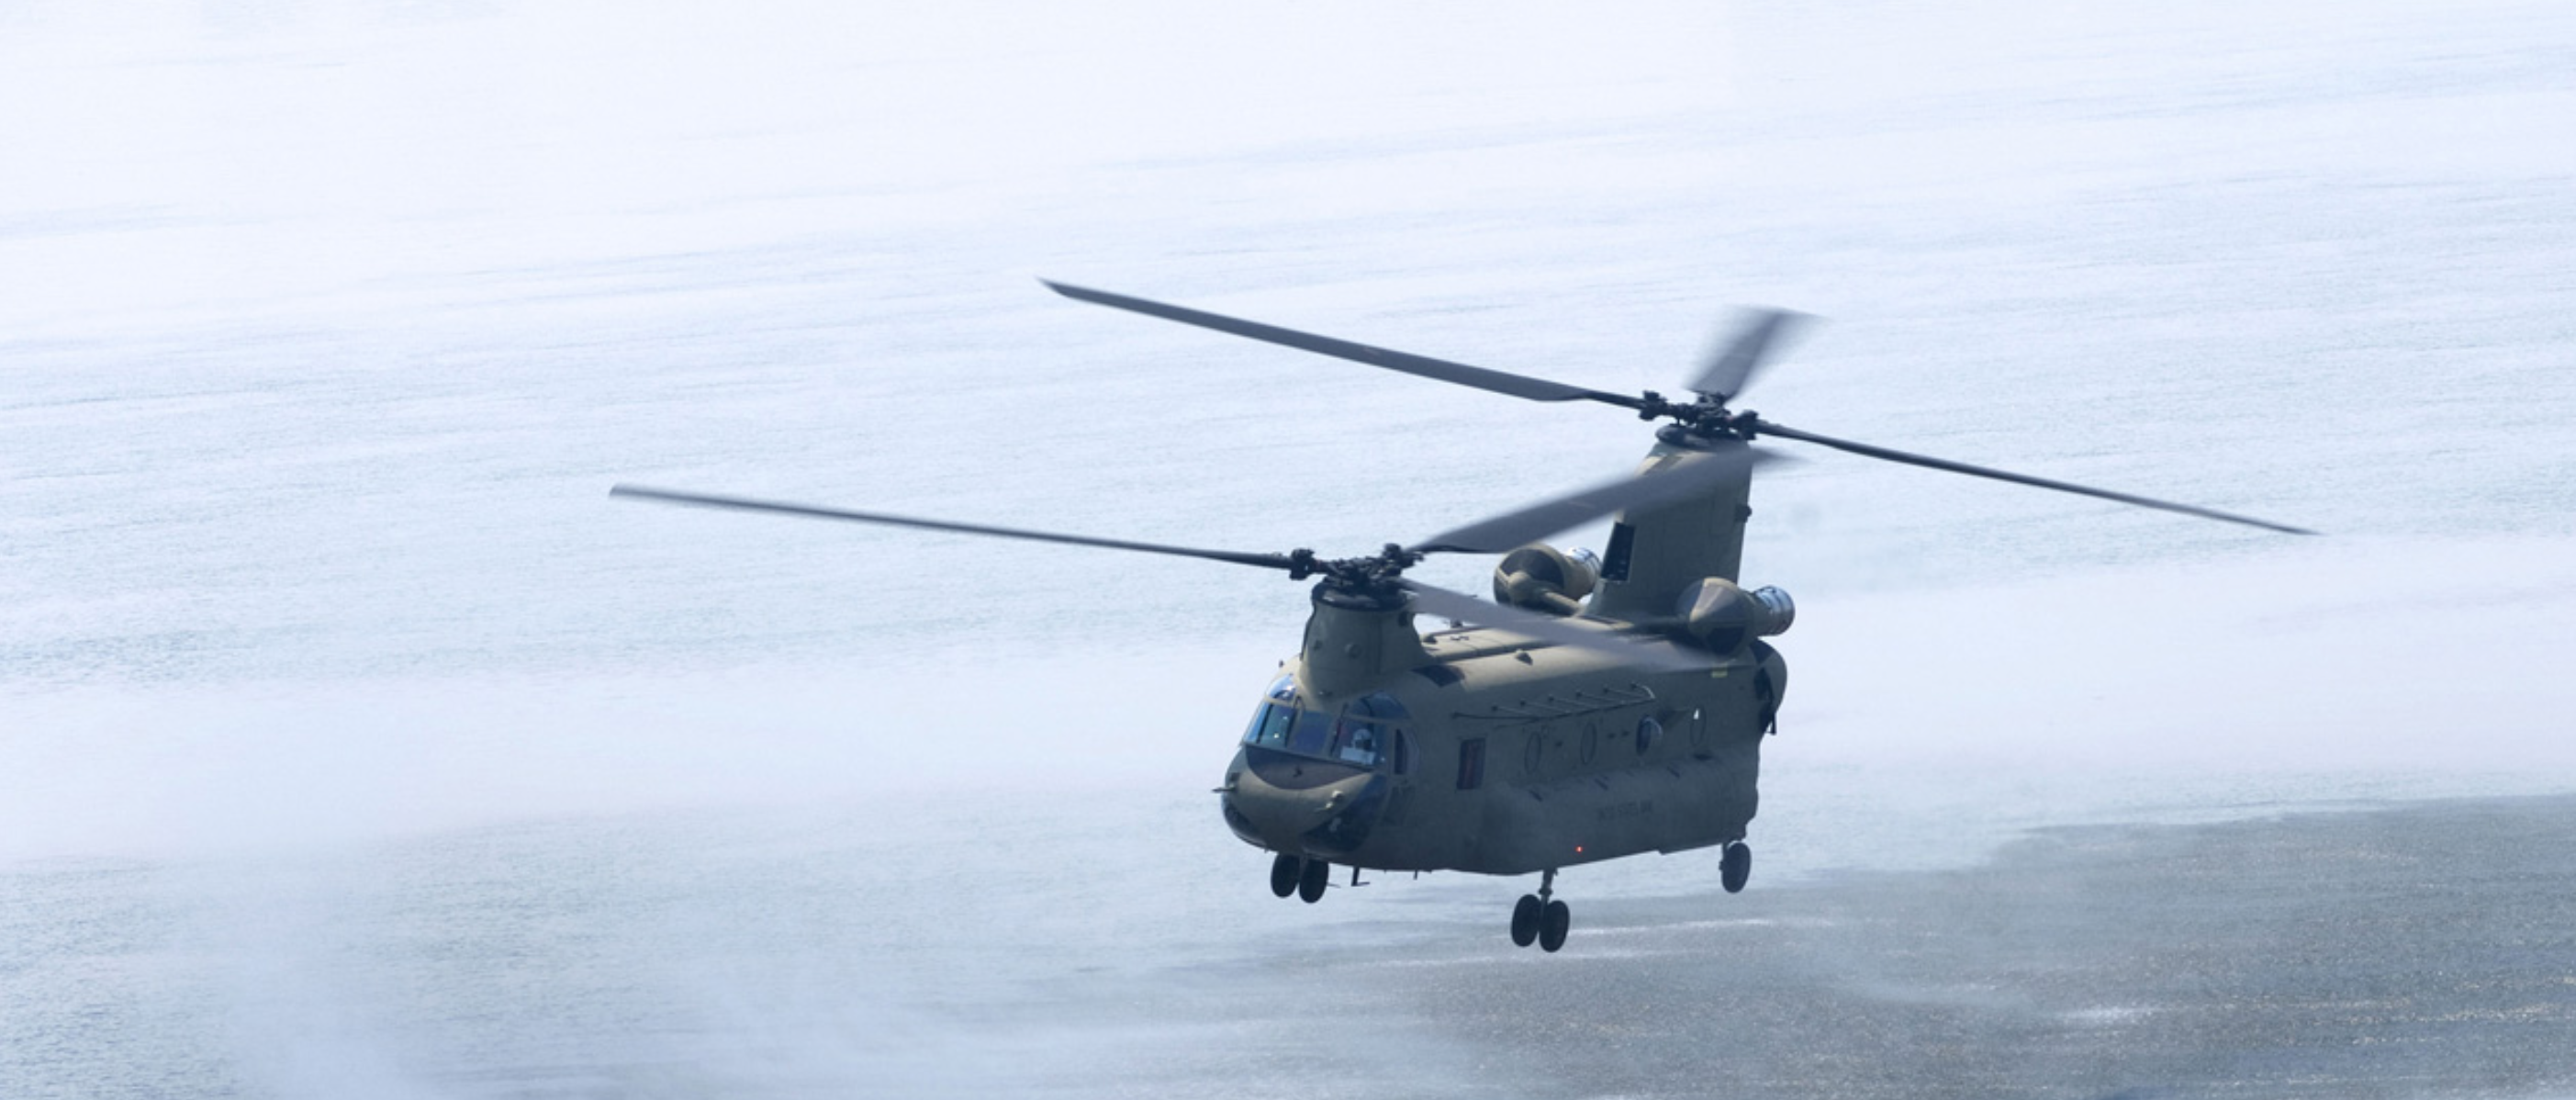 The UK is investing in 14 modern Chinook heavy-lift helicopters